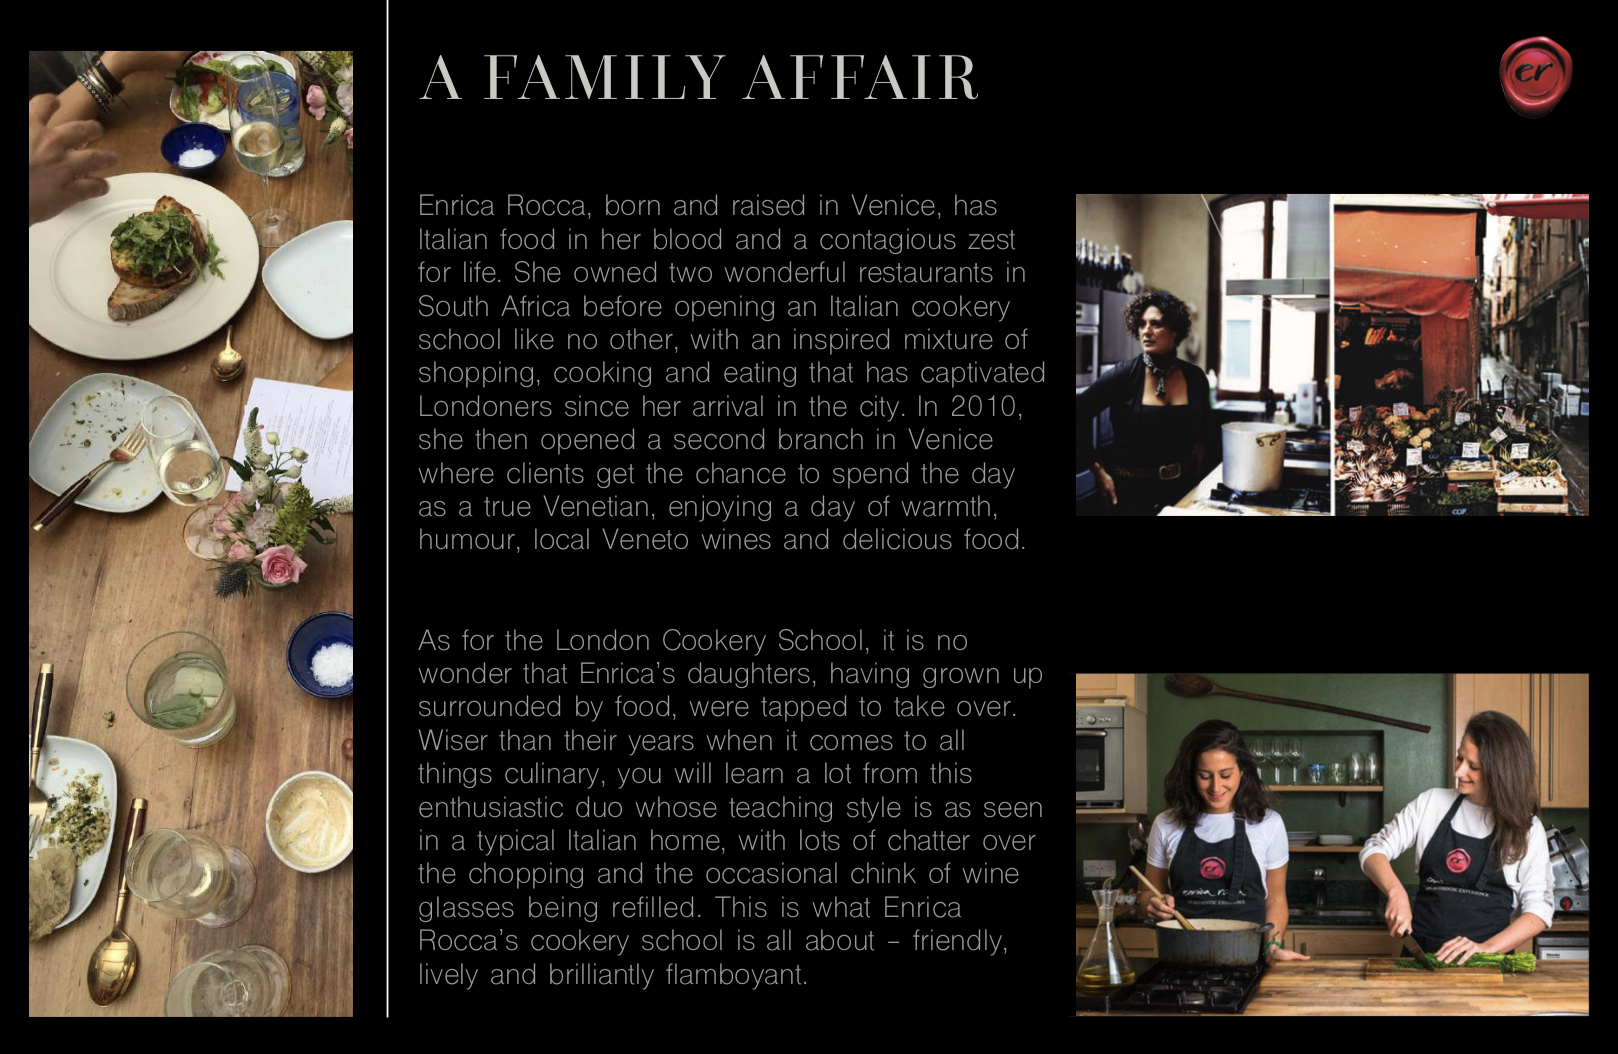 enrica rocca cookery school press kit 2.png